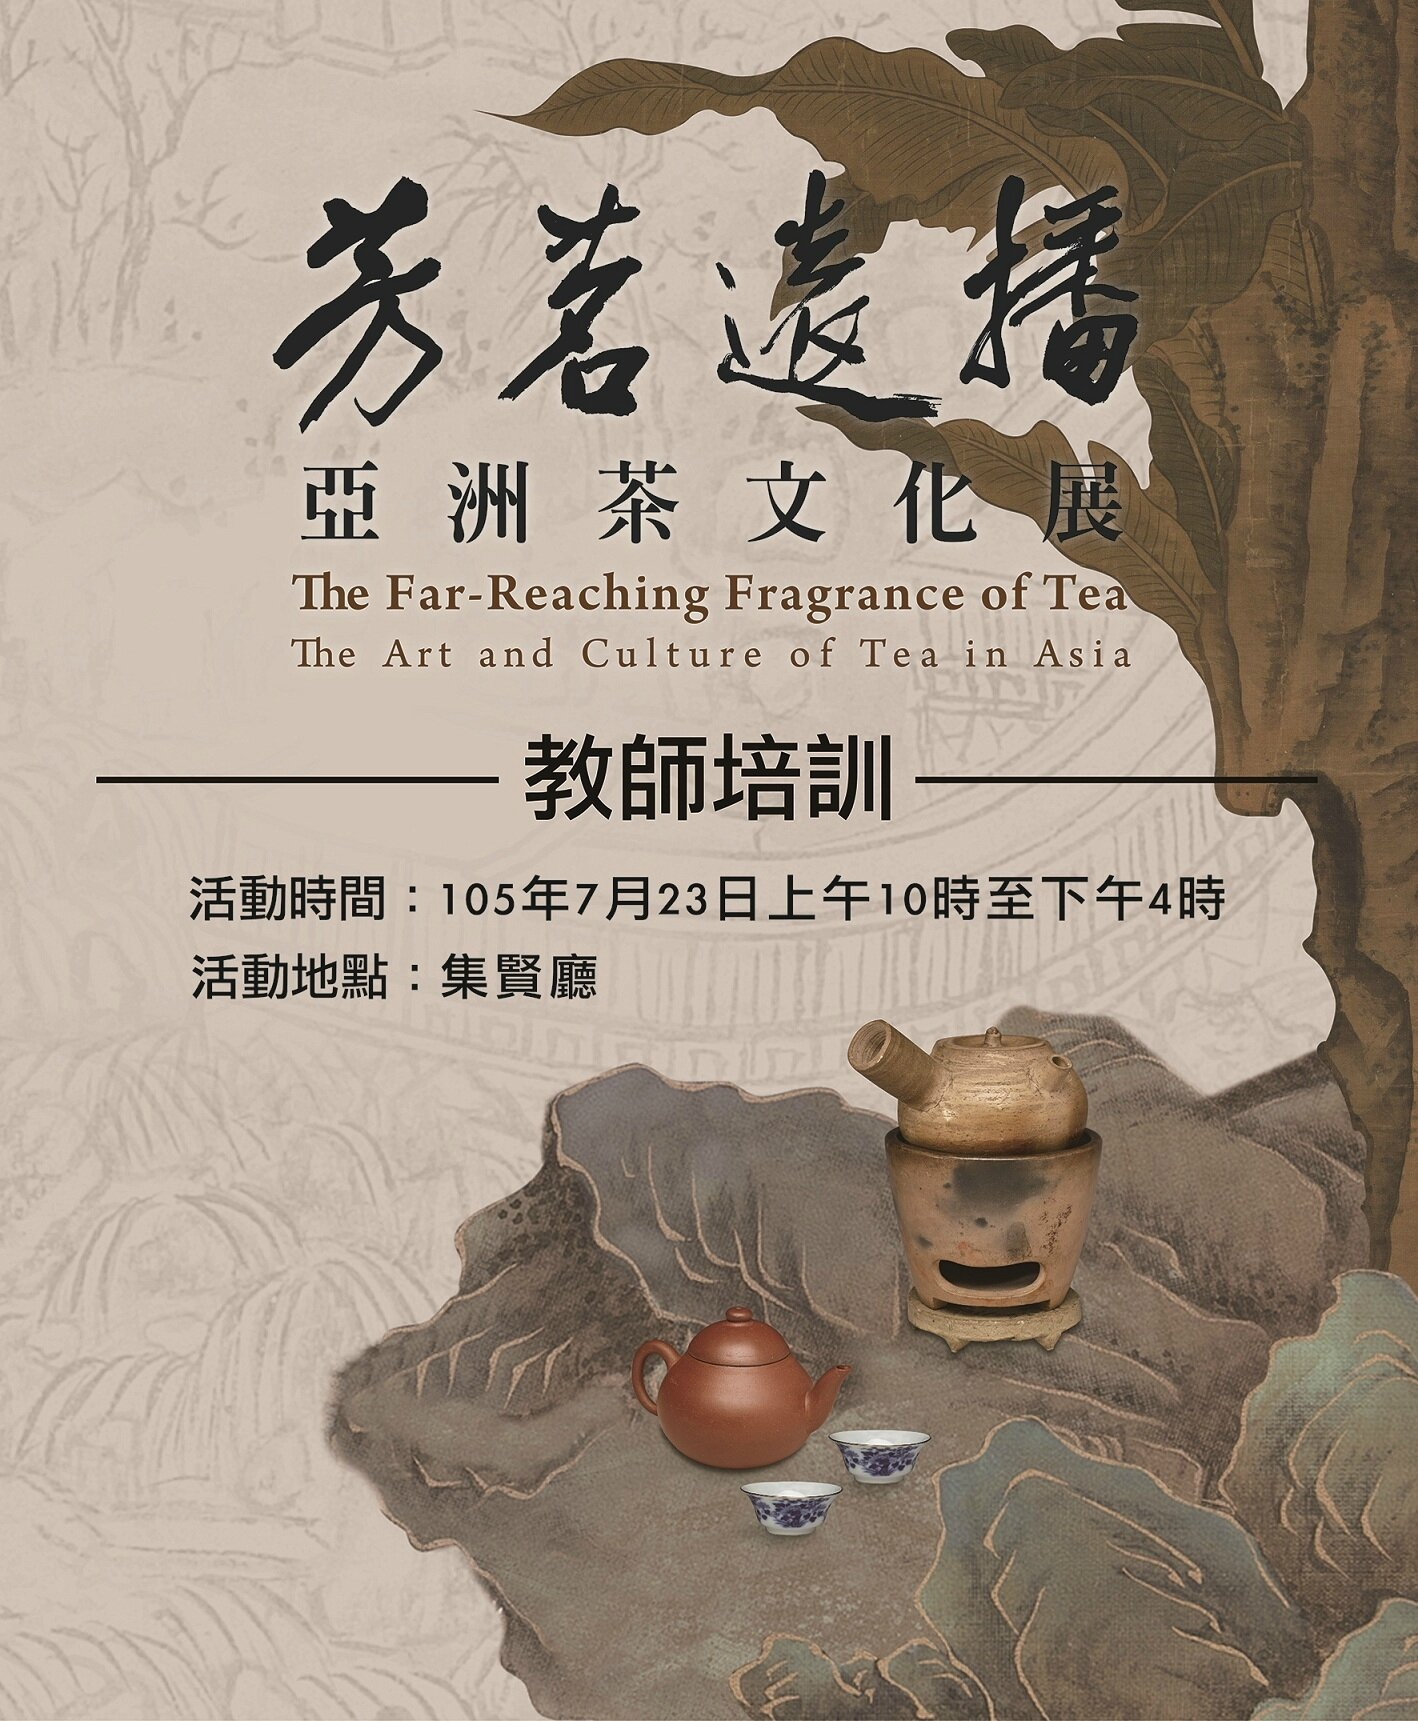 The Far-Reaching Fragrance of Tea: The Art and Culture of Tea in